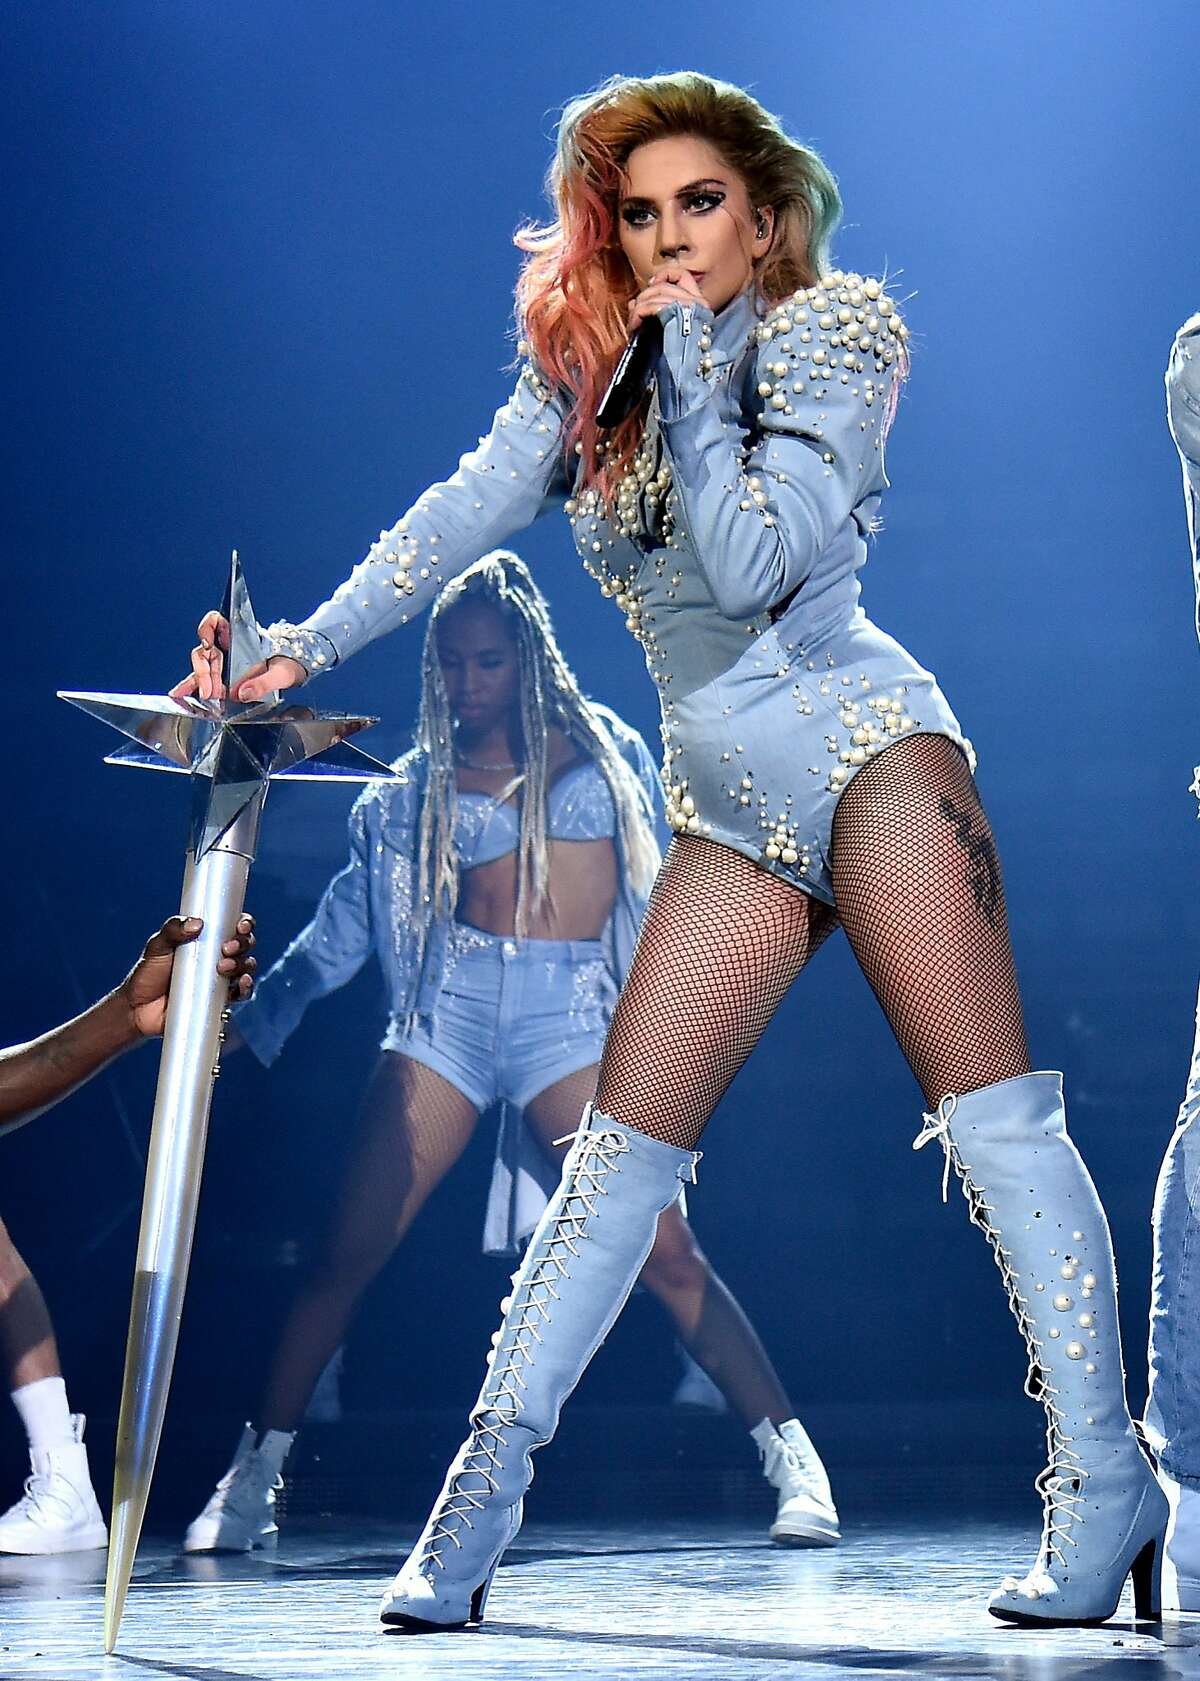 """Lady Gaga performs onstage during the """"Joanne"""" World Tour at The Forum on August 9, 2017 in Inglewood, California."""